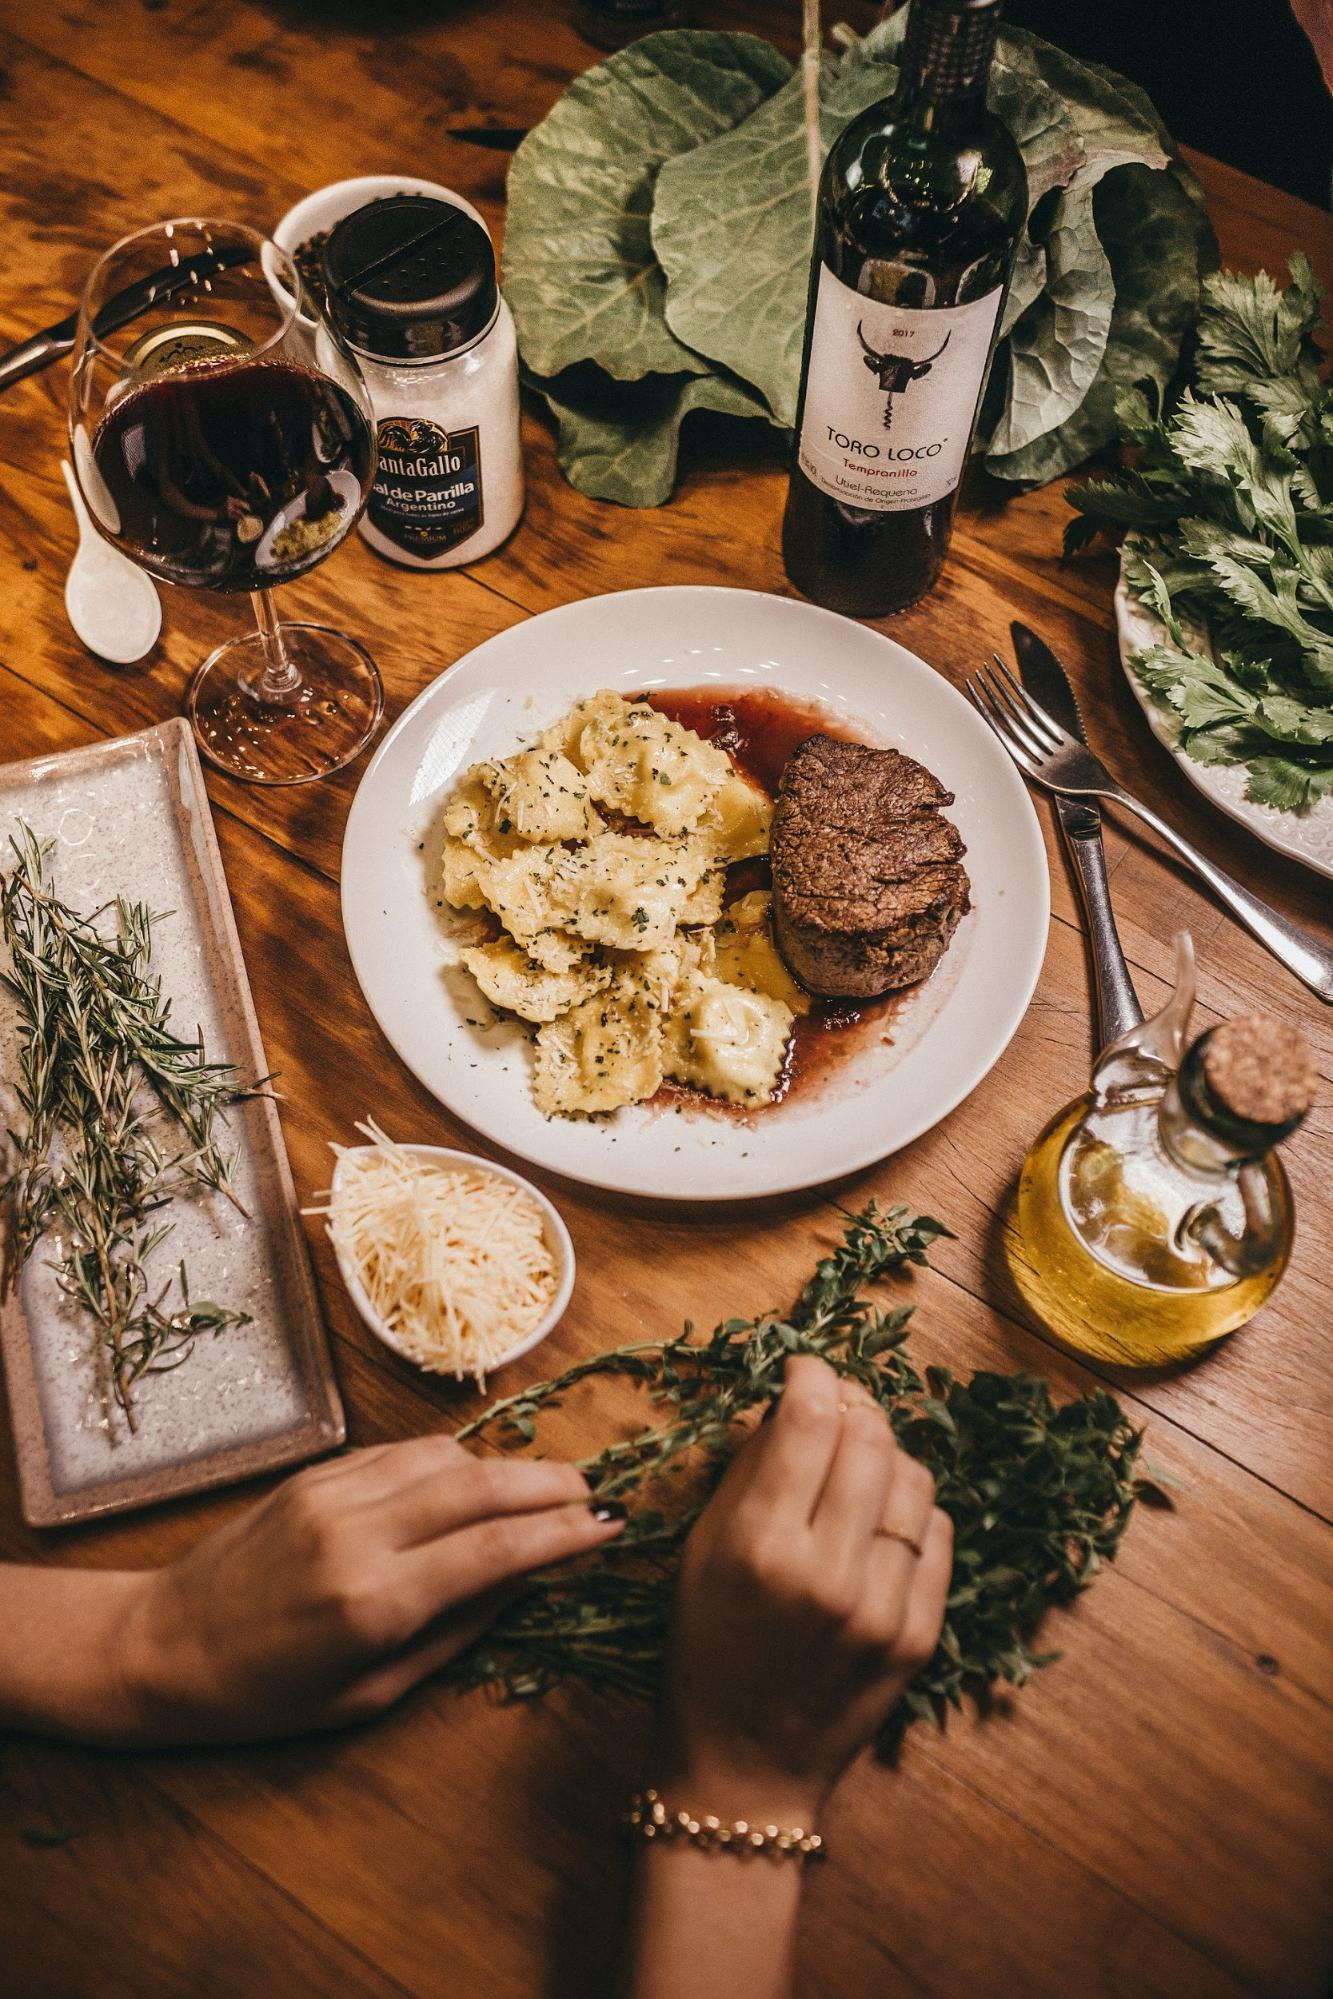 A decadent meal with pasta and red wine